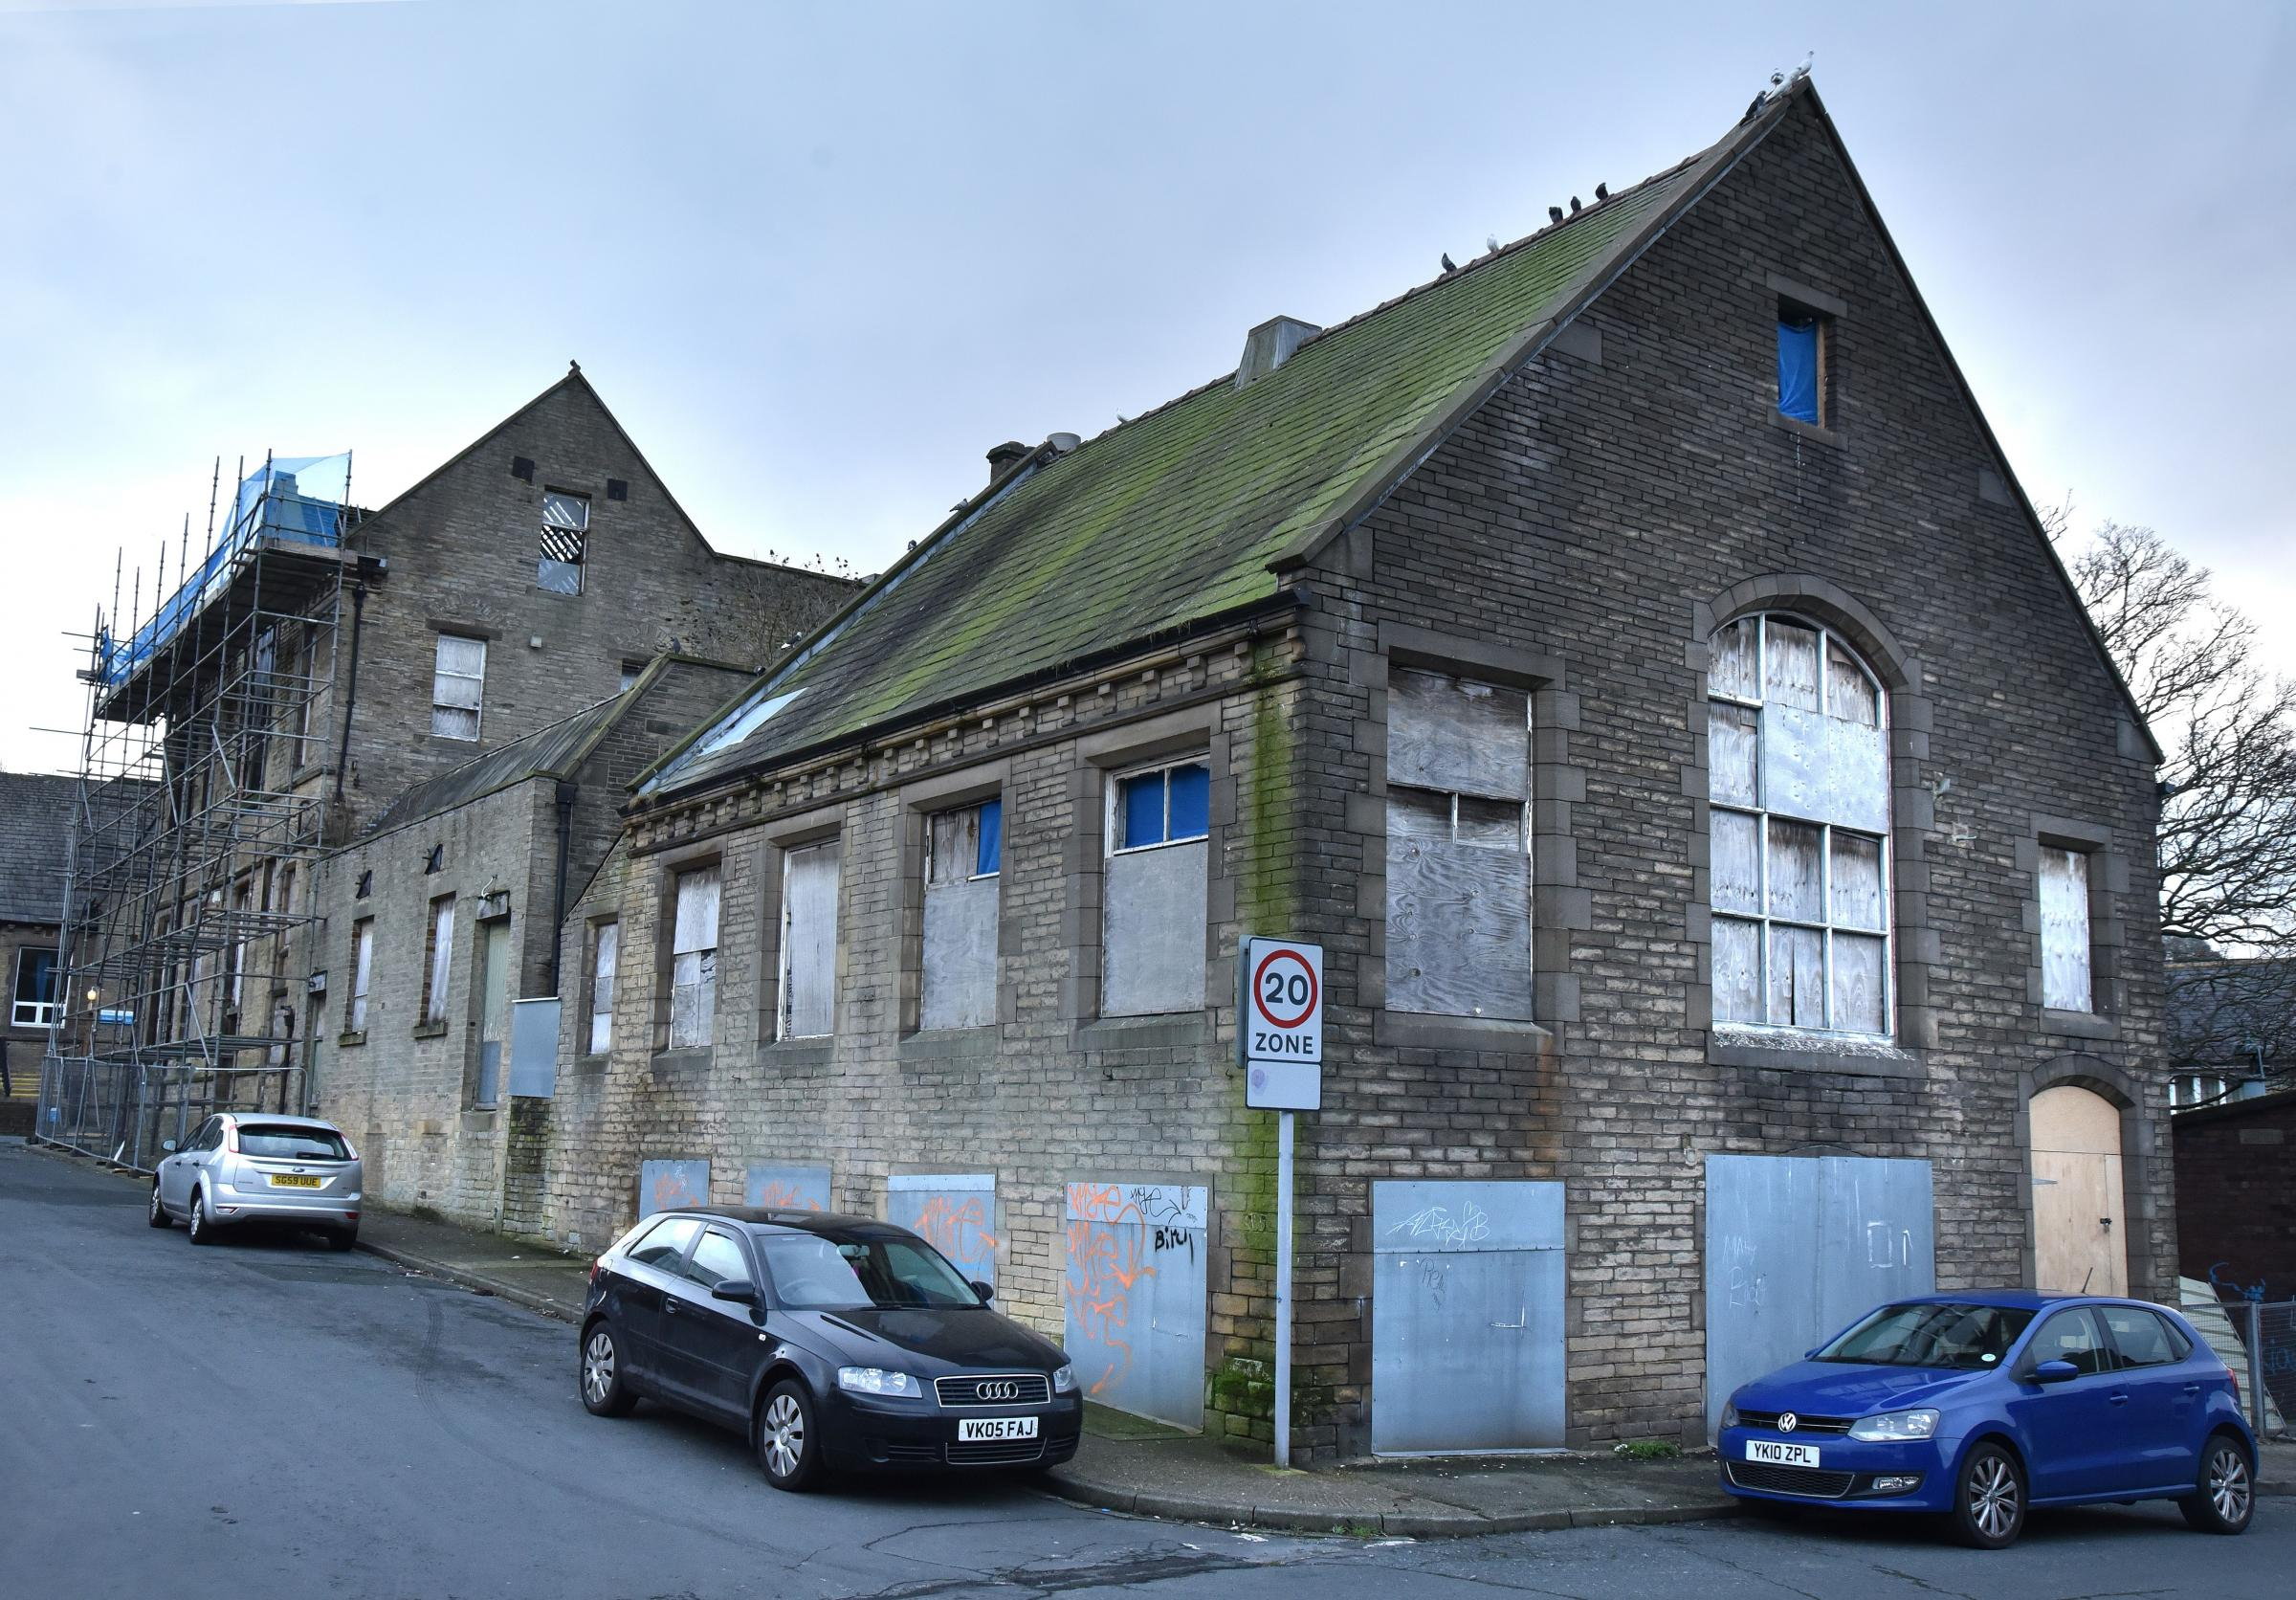 Priesthorpe Annexe in Bingley. Plans for its demolition have been approved.